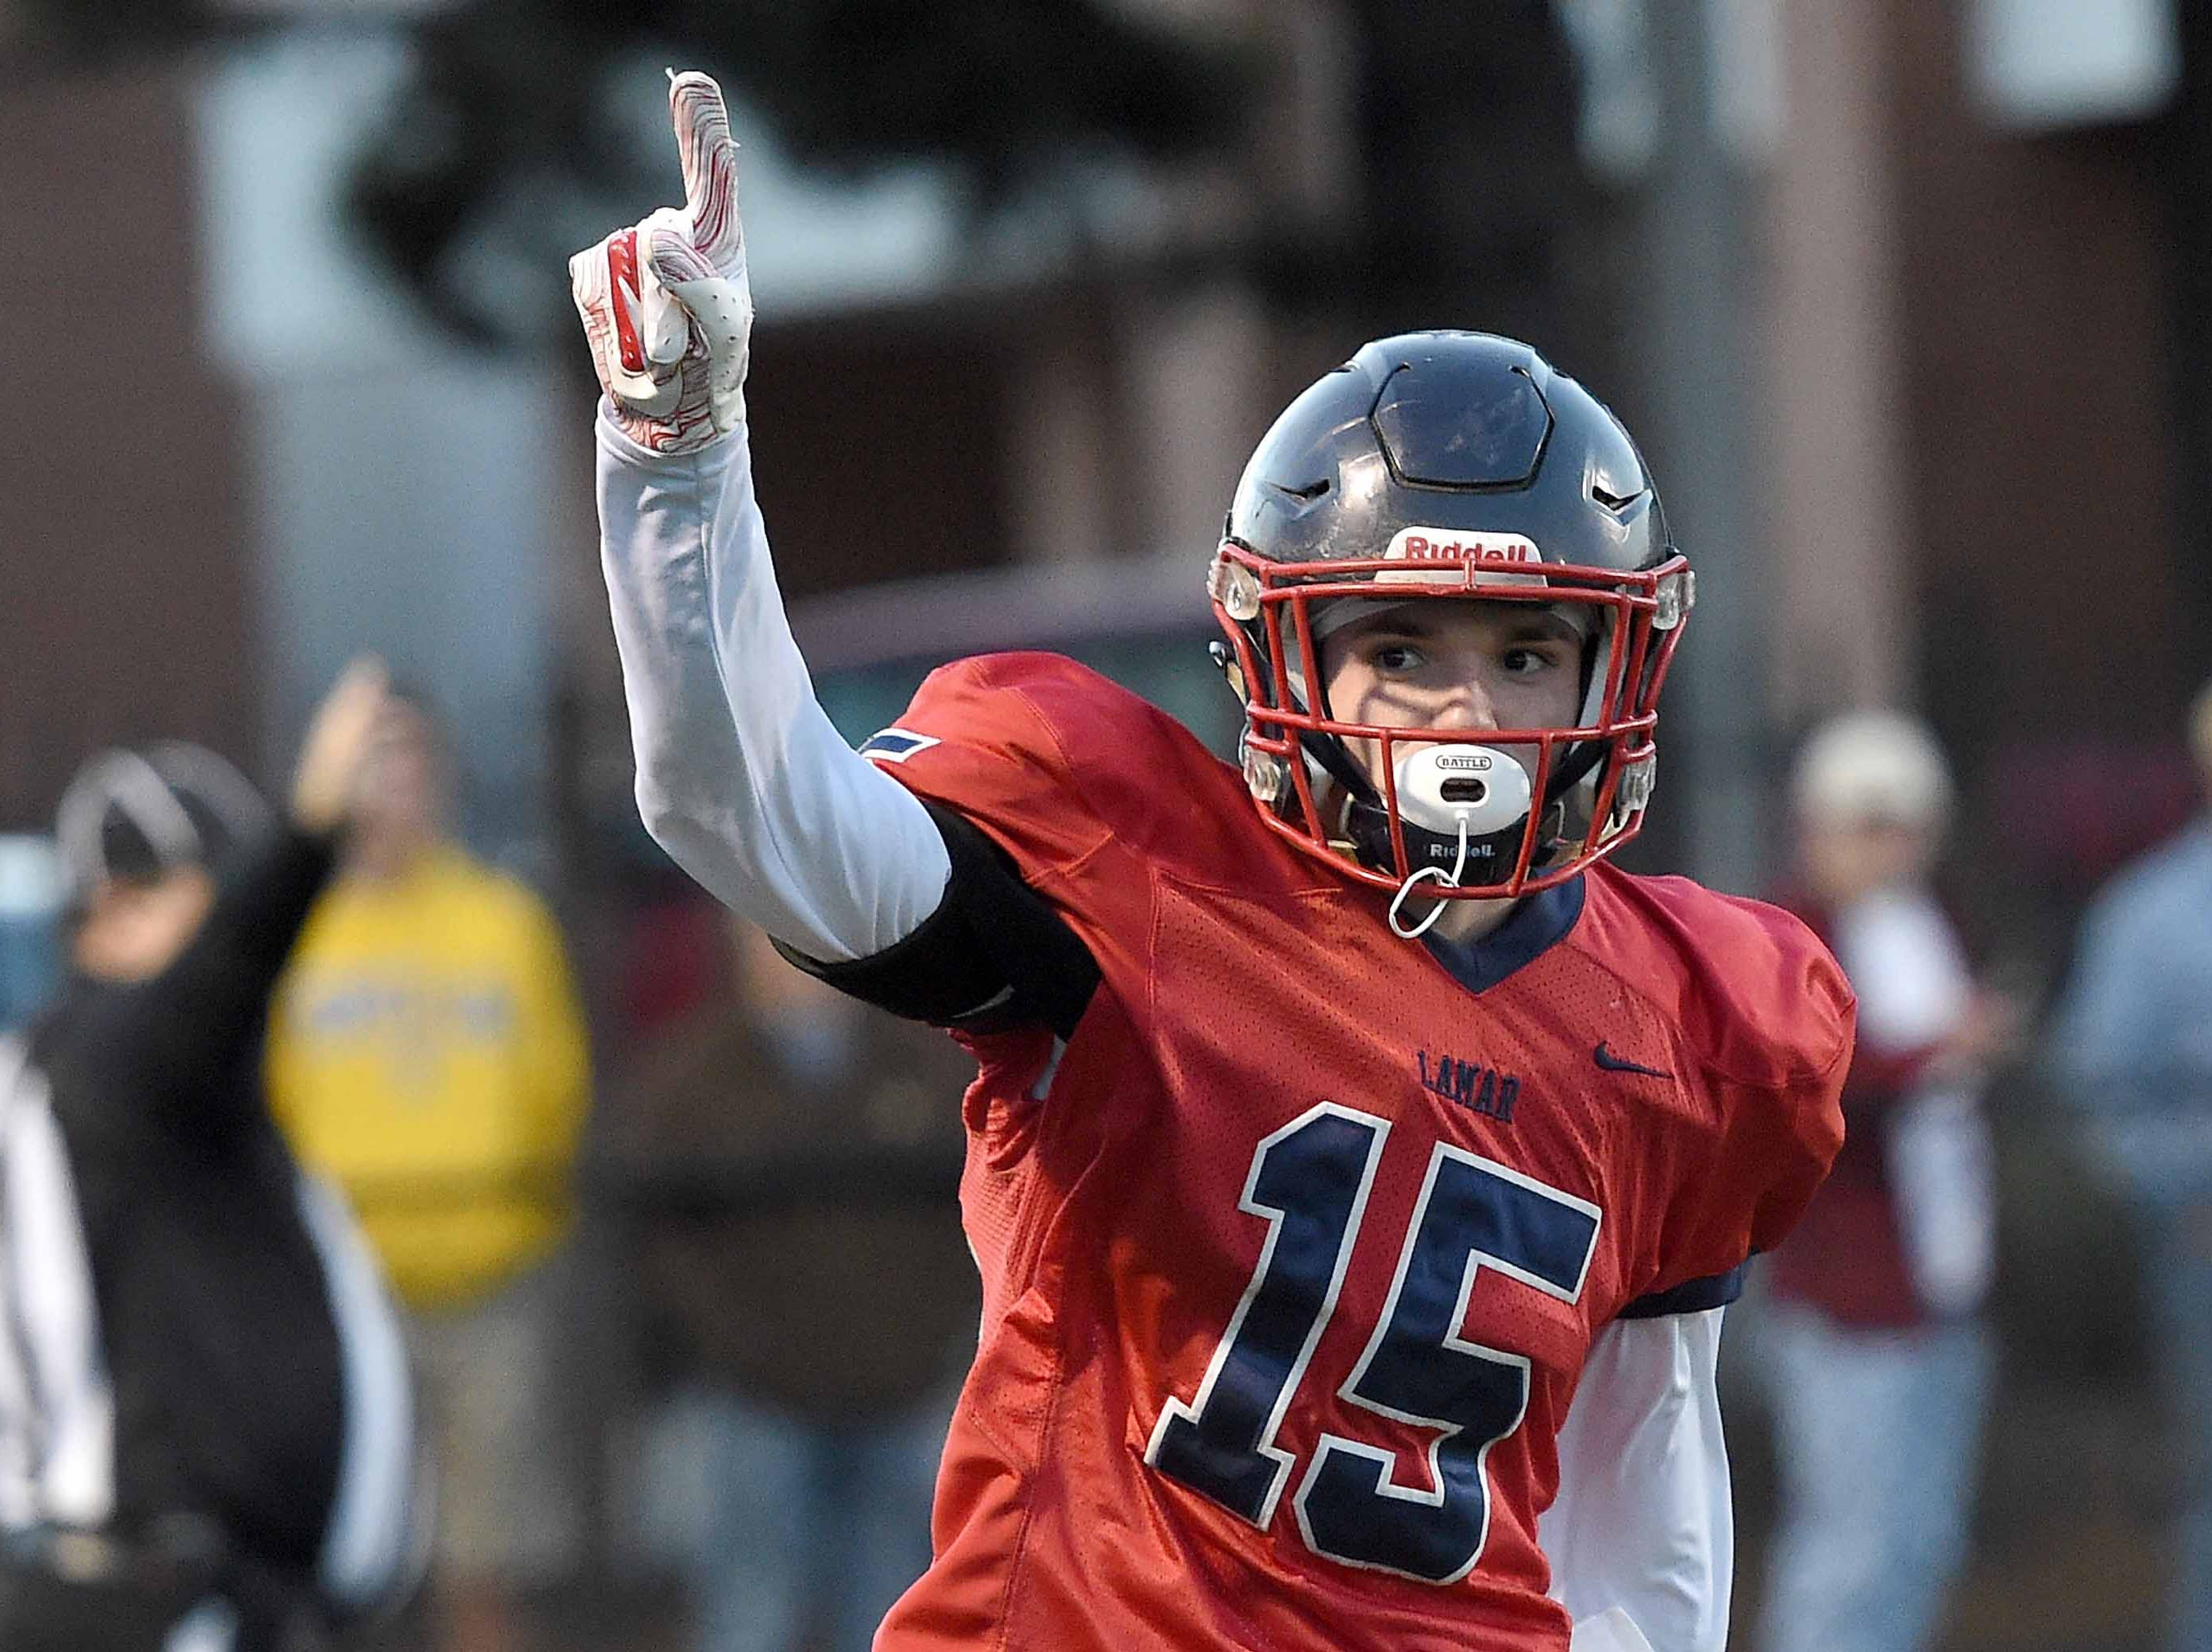 Lamar School's Brooks Brock (15) reacts after intercepting a Simpson Academy pass in the end zone on Thursday, November 15, 2018, in the MAIS Class AAAA-D2 Football Championship at Jackson Academy in Jackson, Miss.